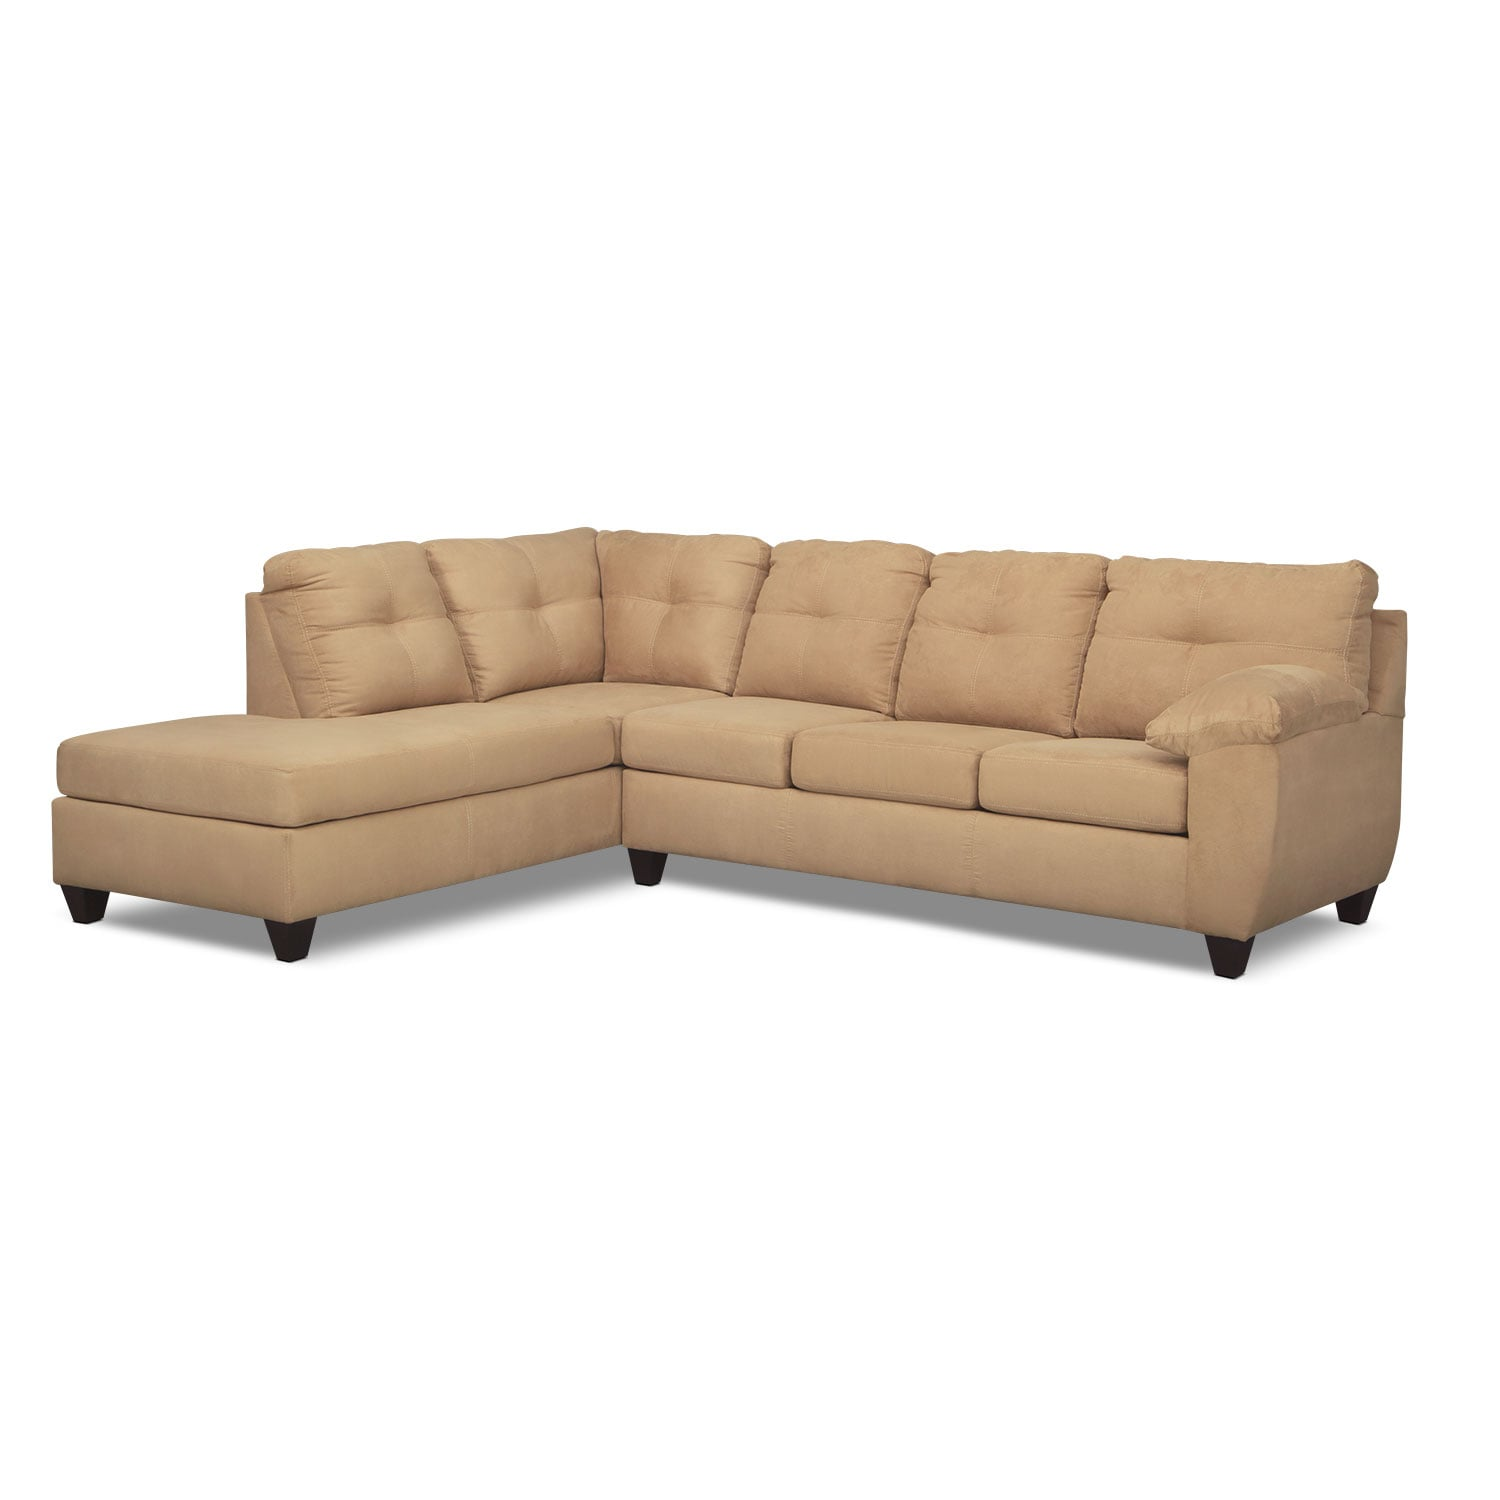 Sleeper Sofas Value City Furniture